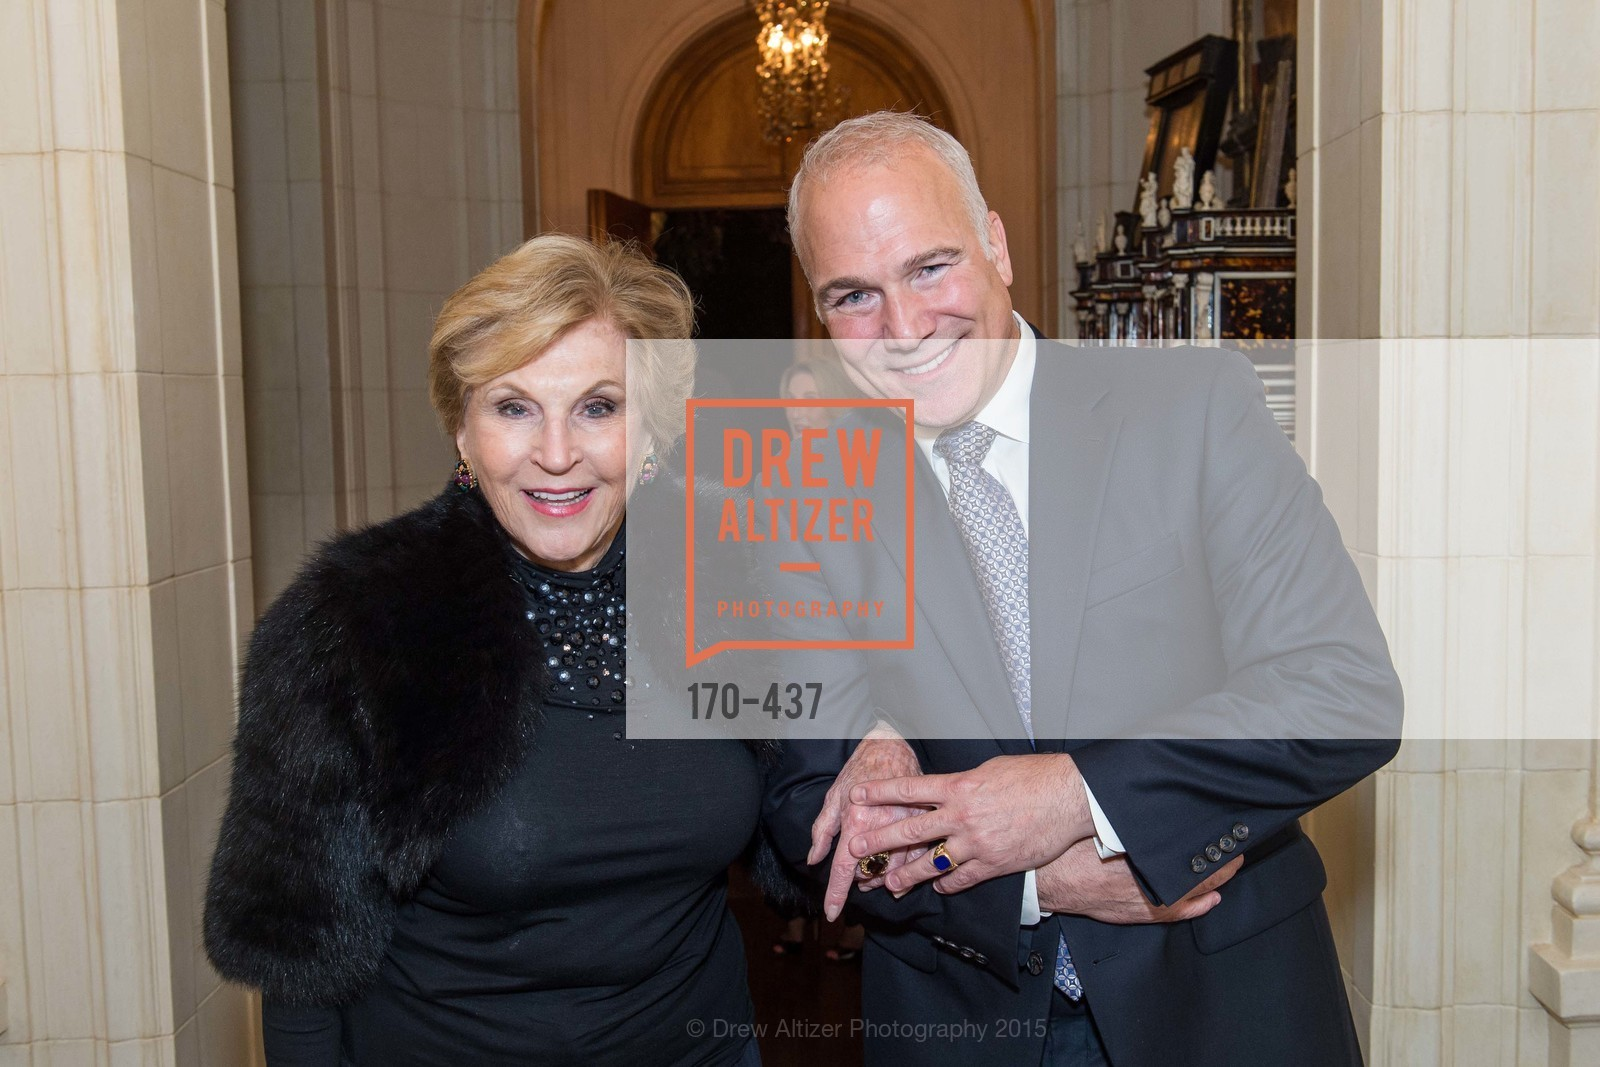 Lois Lehrman, Franc D'Ambrosio, FDS Vintner Reception and Dinner, Private Residence, November 4th, 2015,Drew Altizer, Drew Altizer Photography, full-service event agency, private events, San Francisco photographer, photographer California